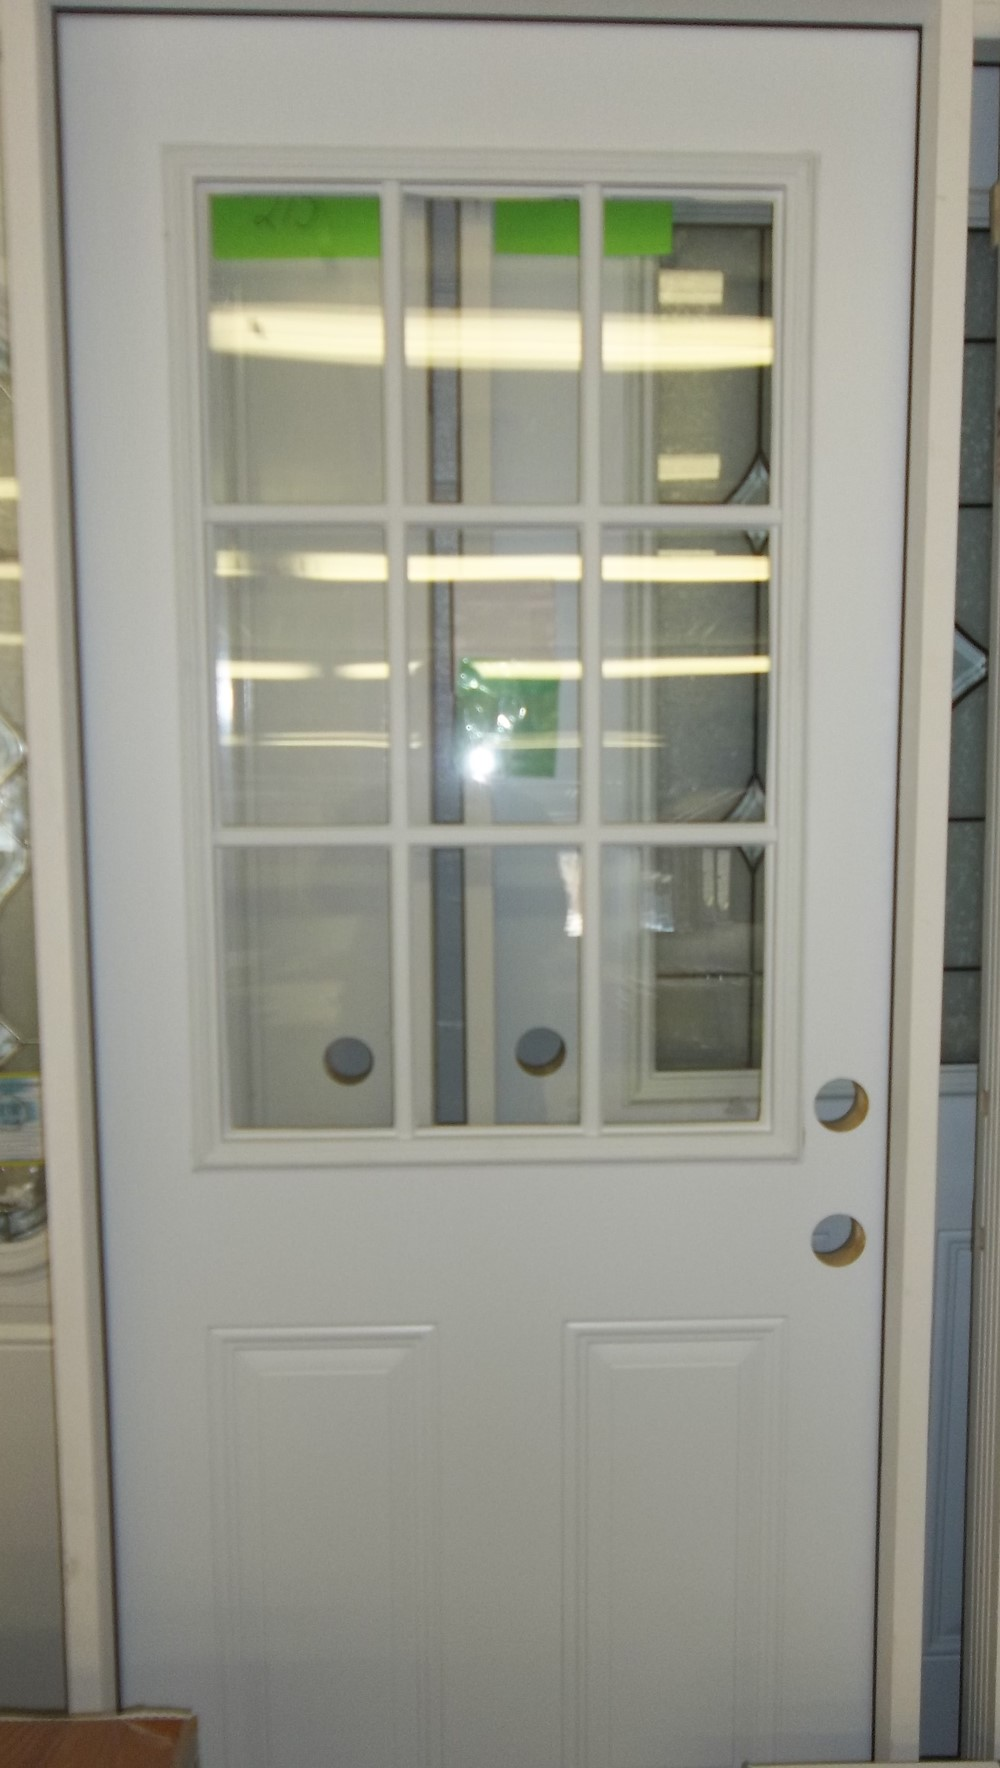 9 Lite Steel Door Unit $189